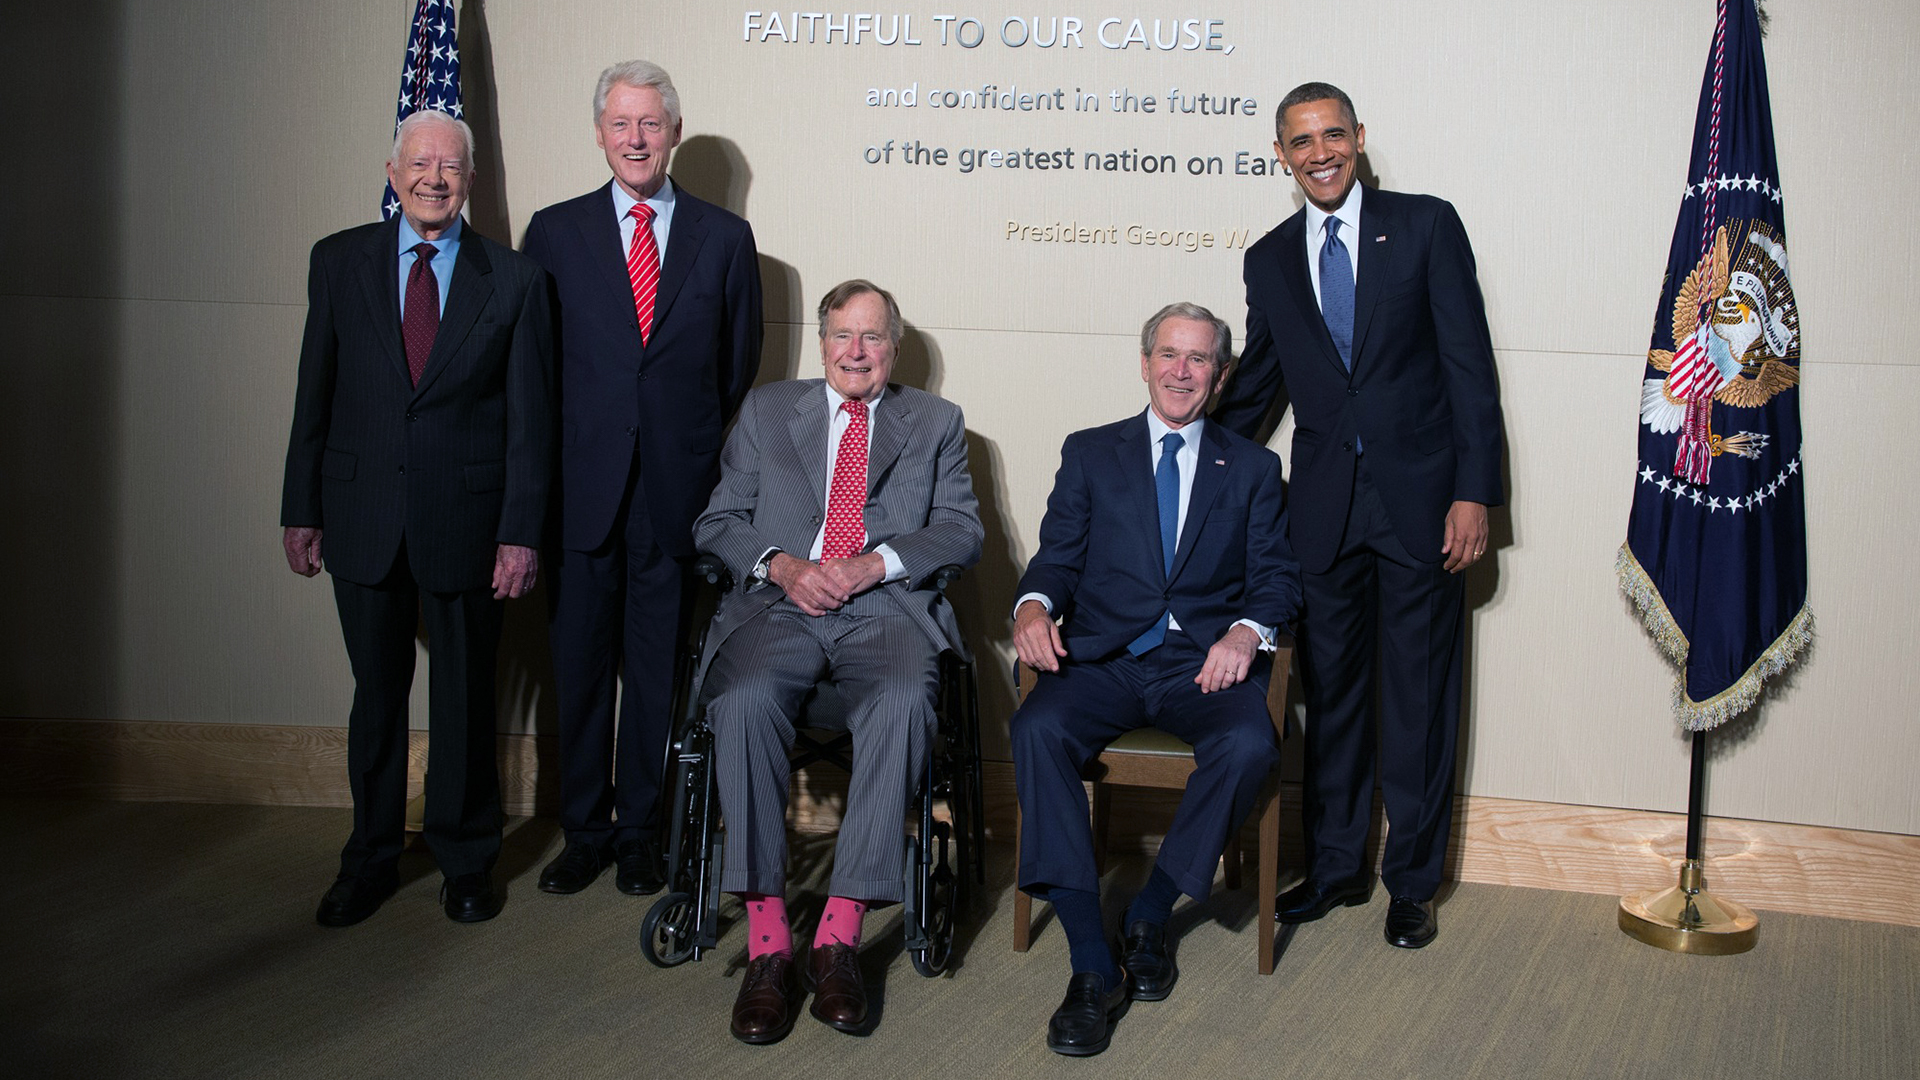 Jimmy Carter, George HW Bush, George W Bush, Bill Clinton, Barack Obama-159532.jpg10289422